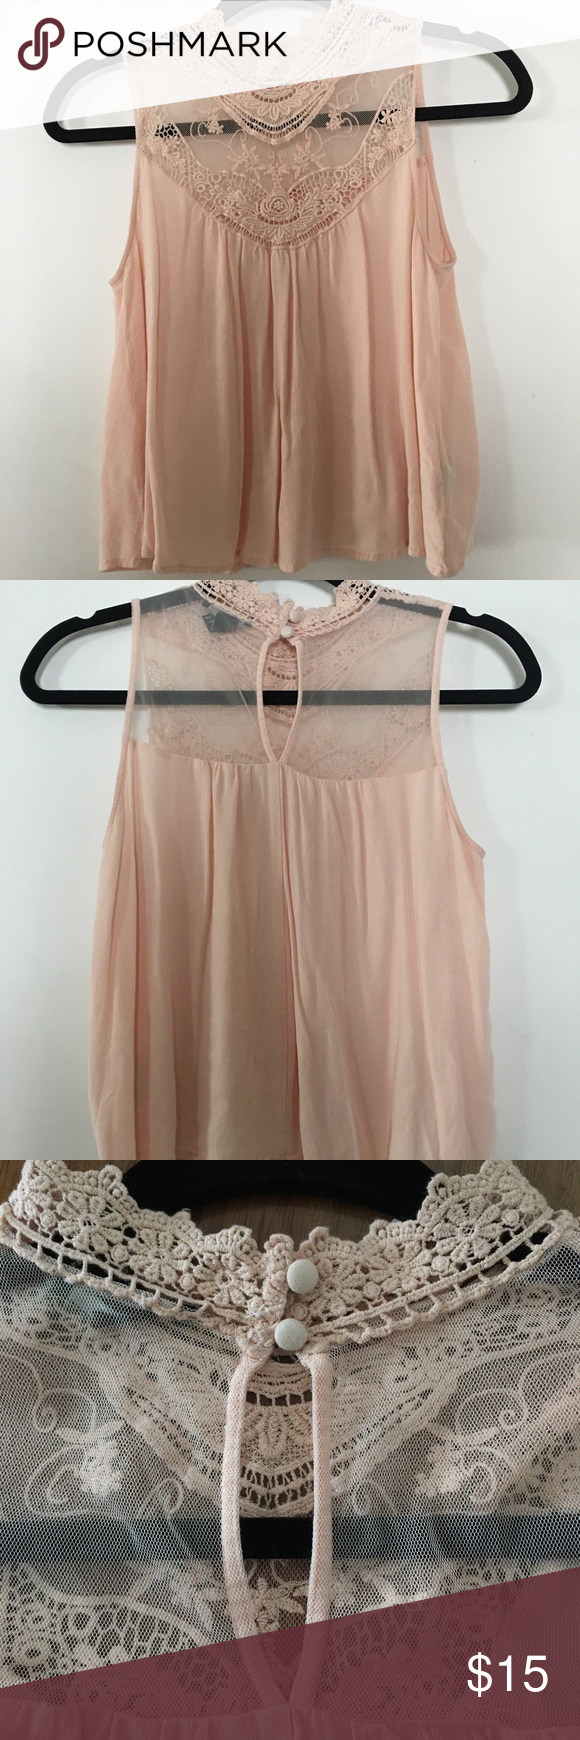 Beautiful Bohemian Crochet Flowy Top! Super cute blush pink flowy shirt! Only worn once! Forever 21 Tops